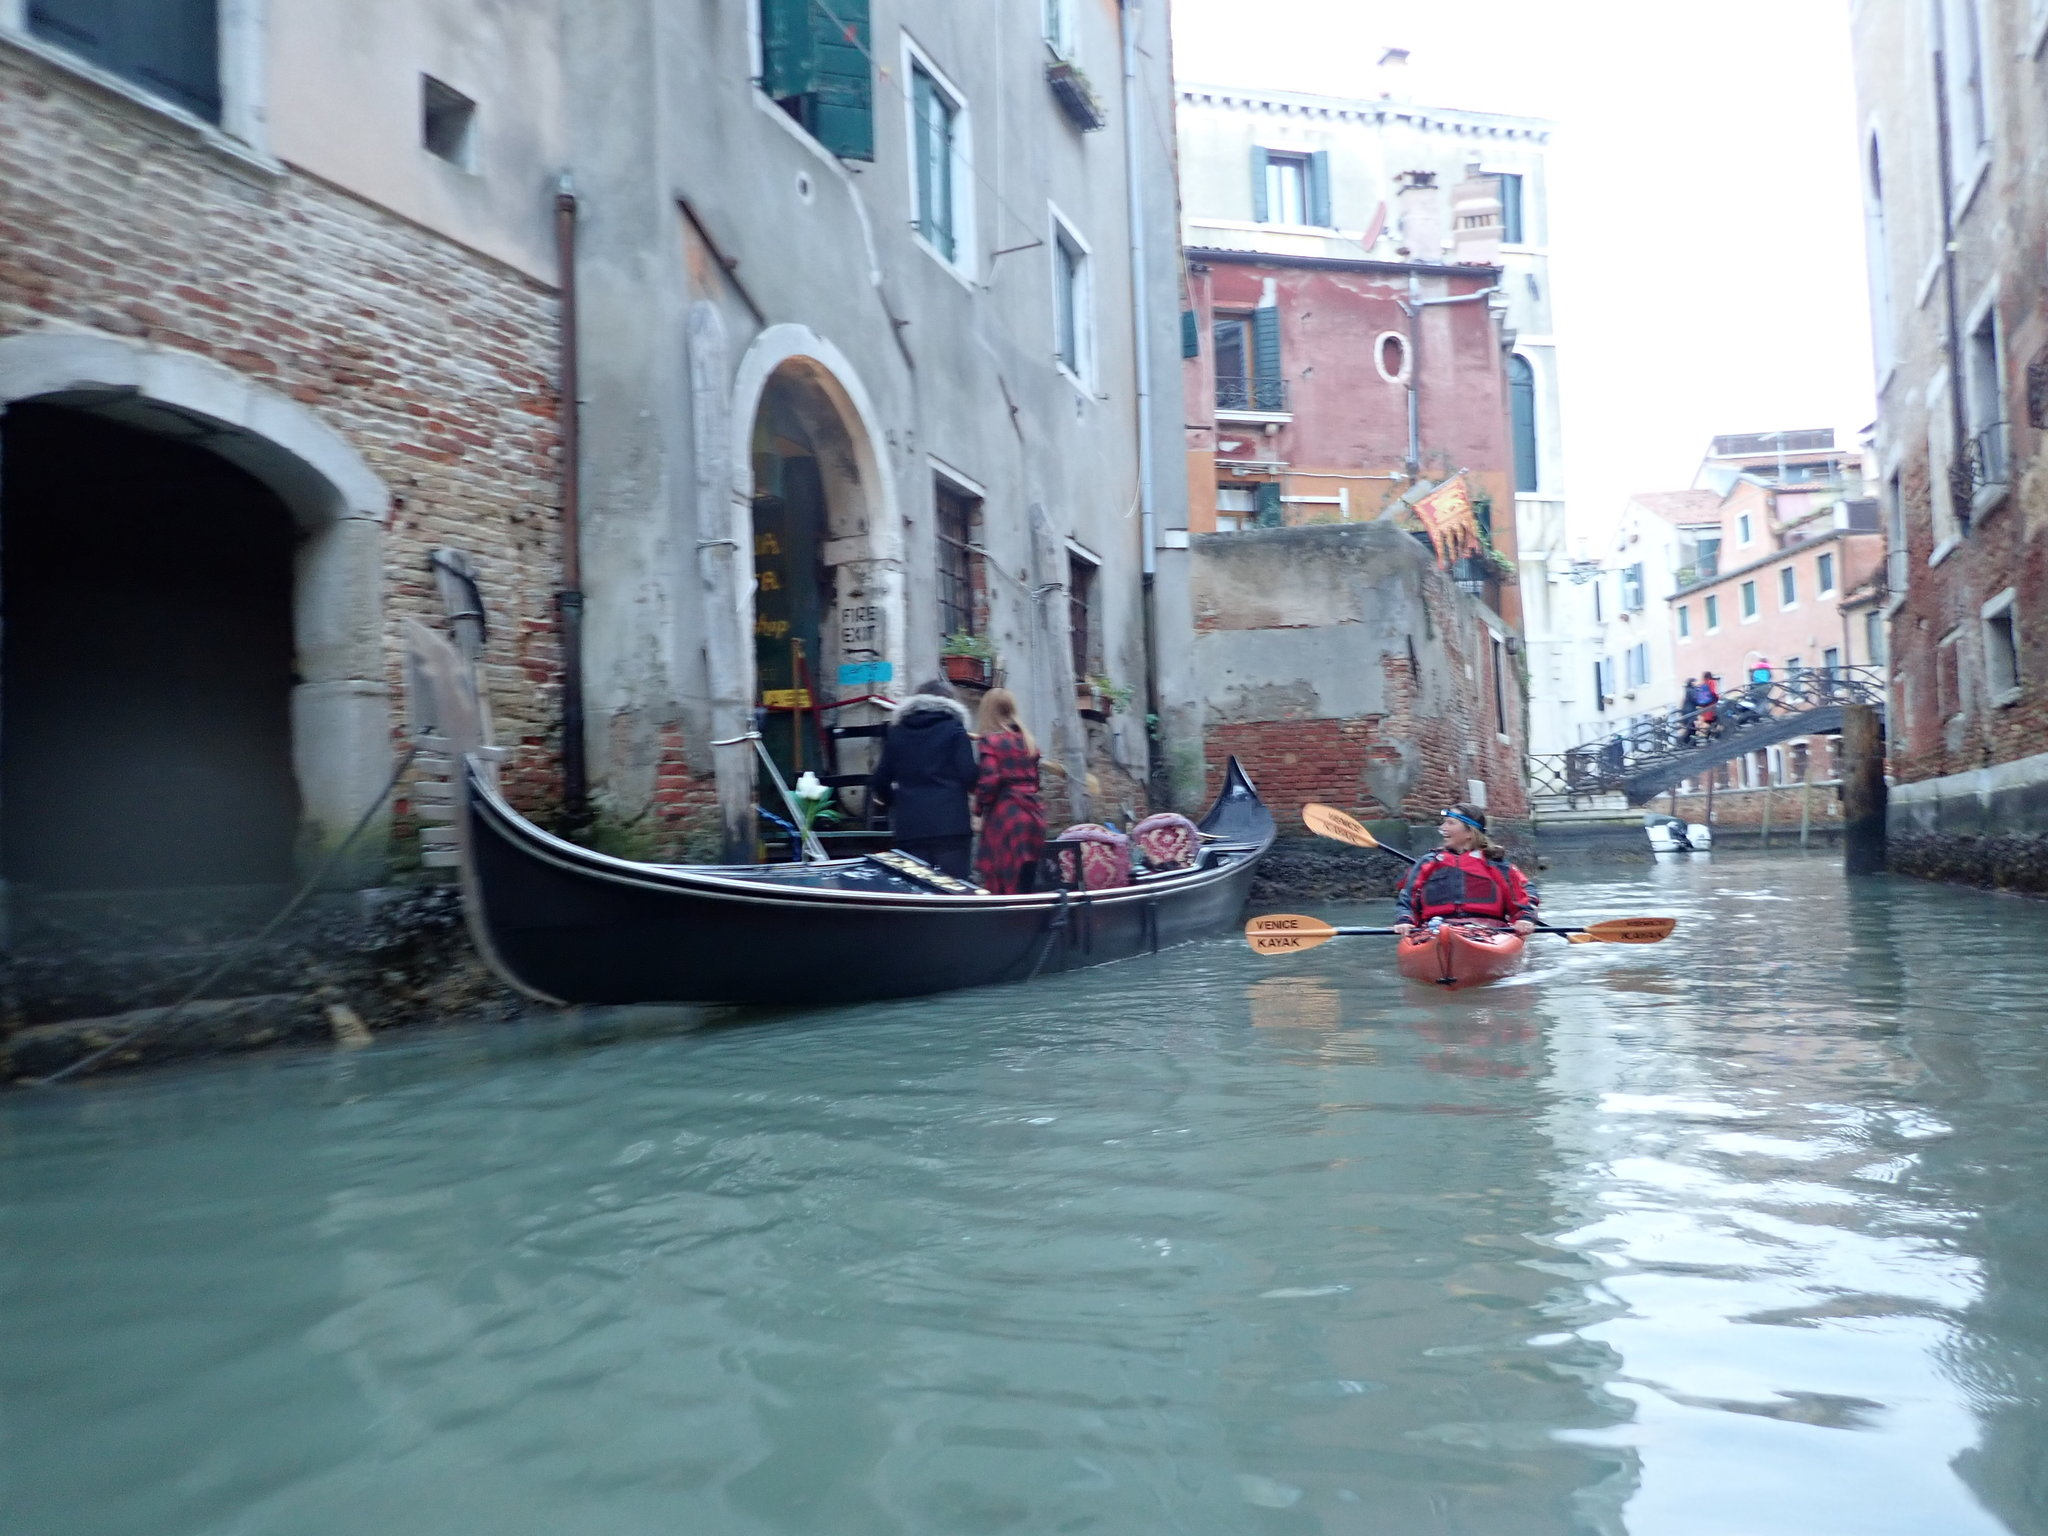 Koru kayak in Venice